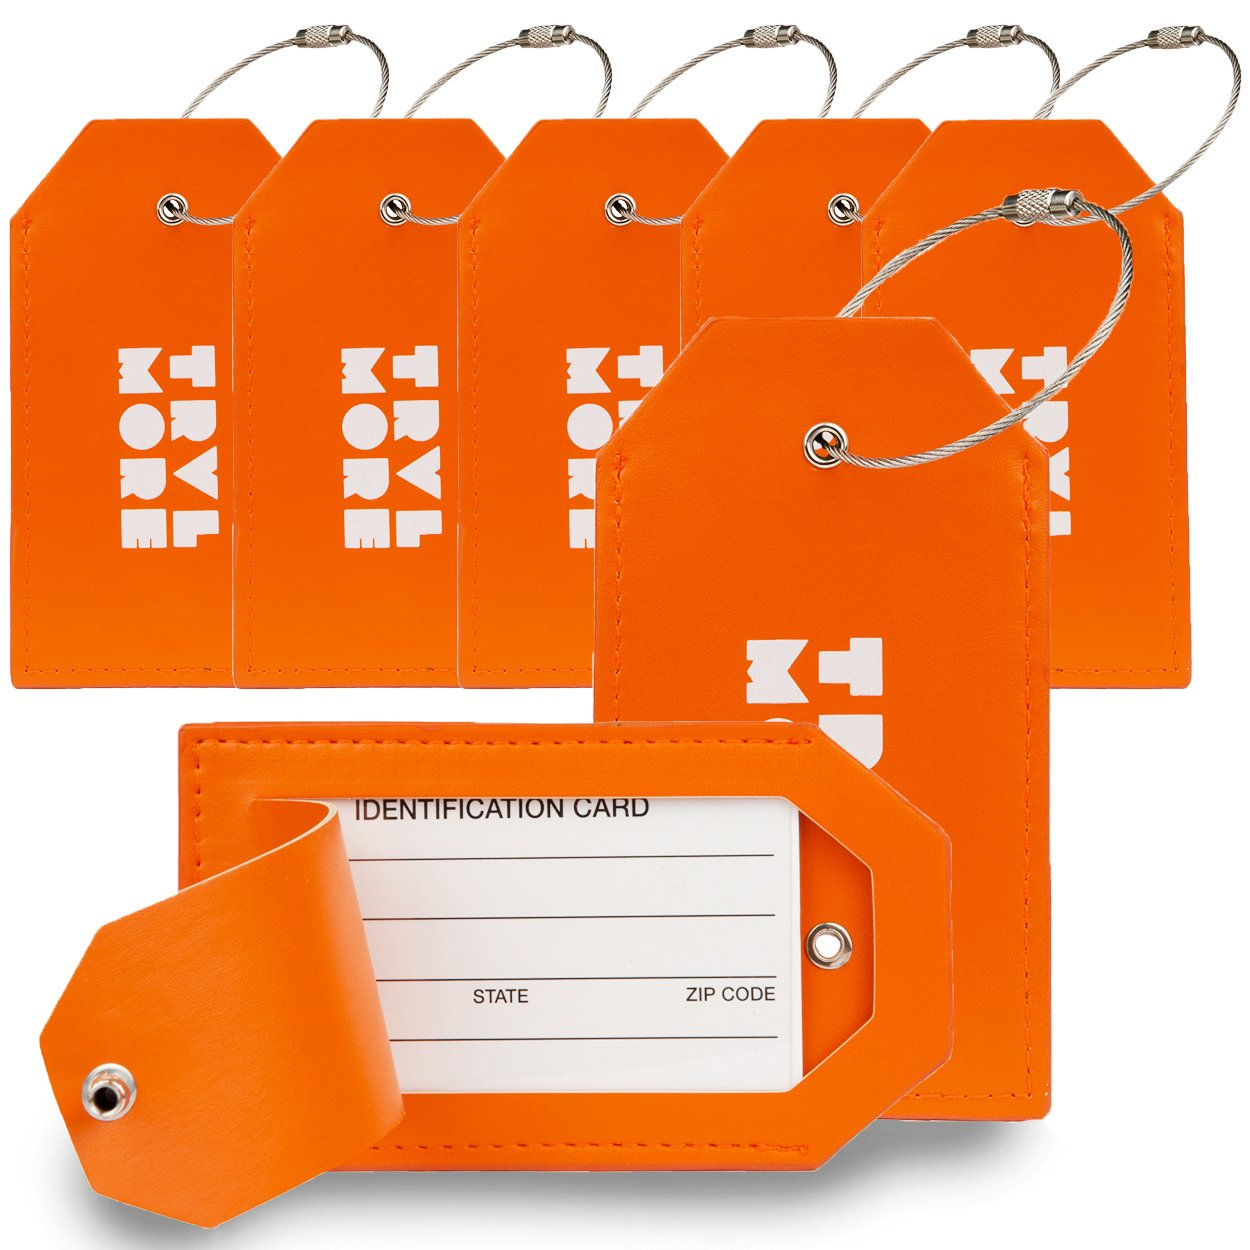 7 Pack TravelMore PU Leather Luggage Tags For Suitcases w/Privacy Cover - Travel ID Identifier Labels Set For Bags & Baggage - Men & Woman - Orange